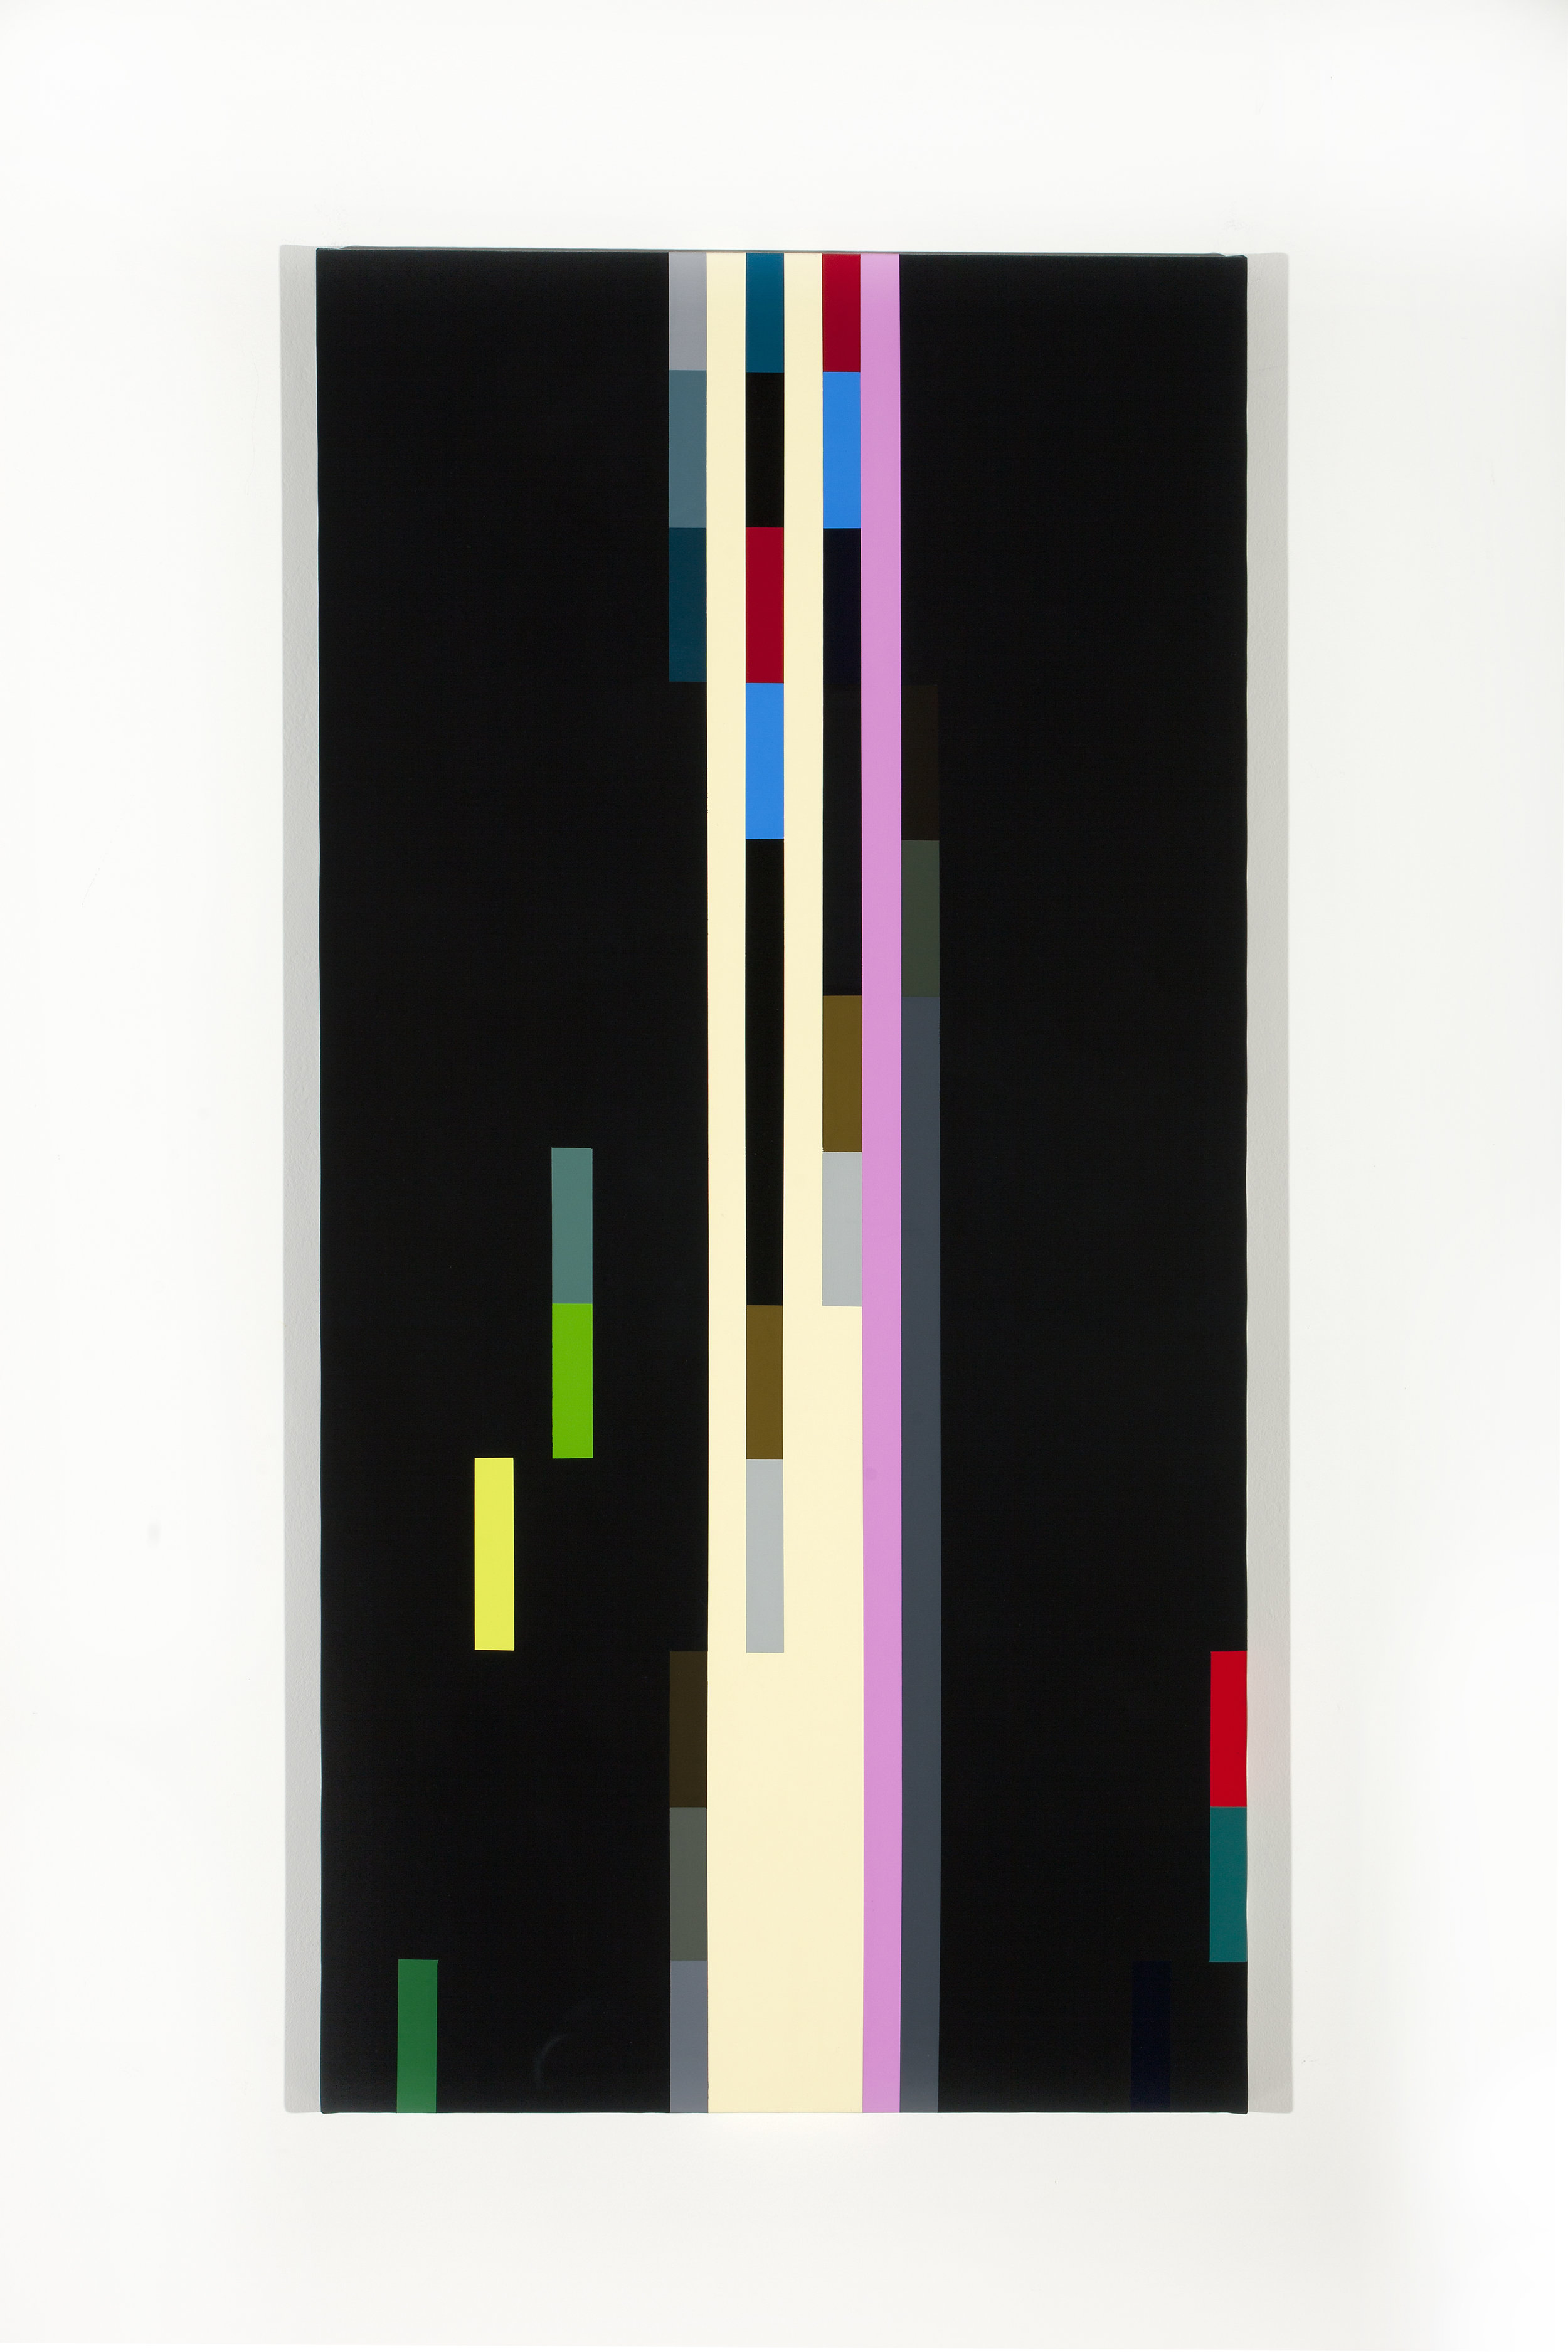 Robert Owen, Soundings, (composition #04)  2012 synthetic polymer paint on canvas,62.5 x 125 cm.